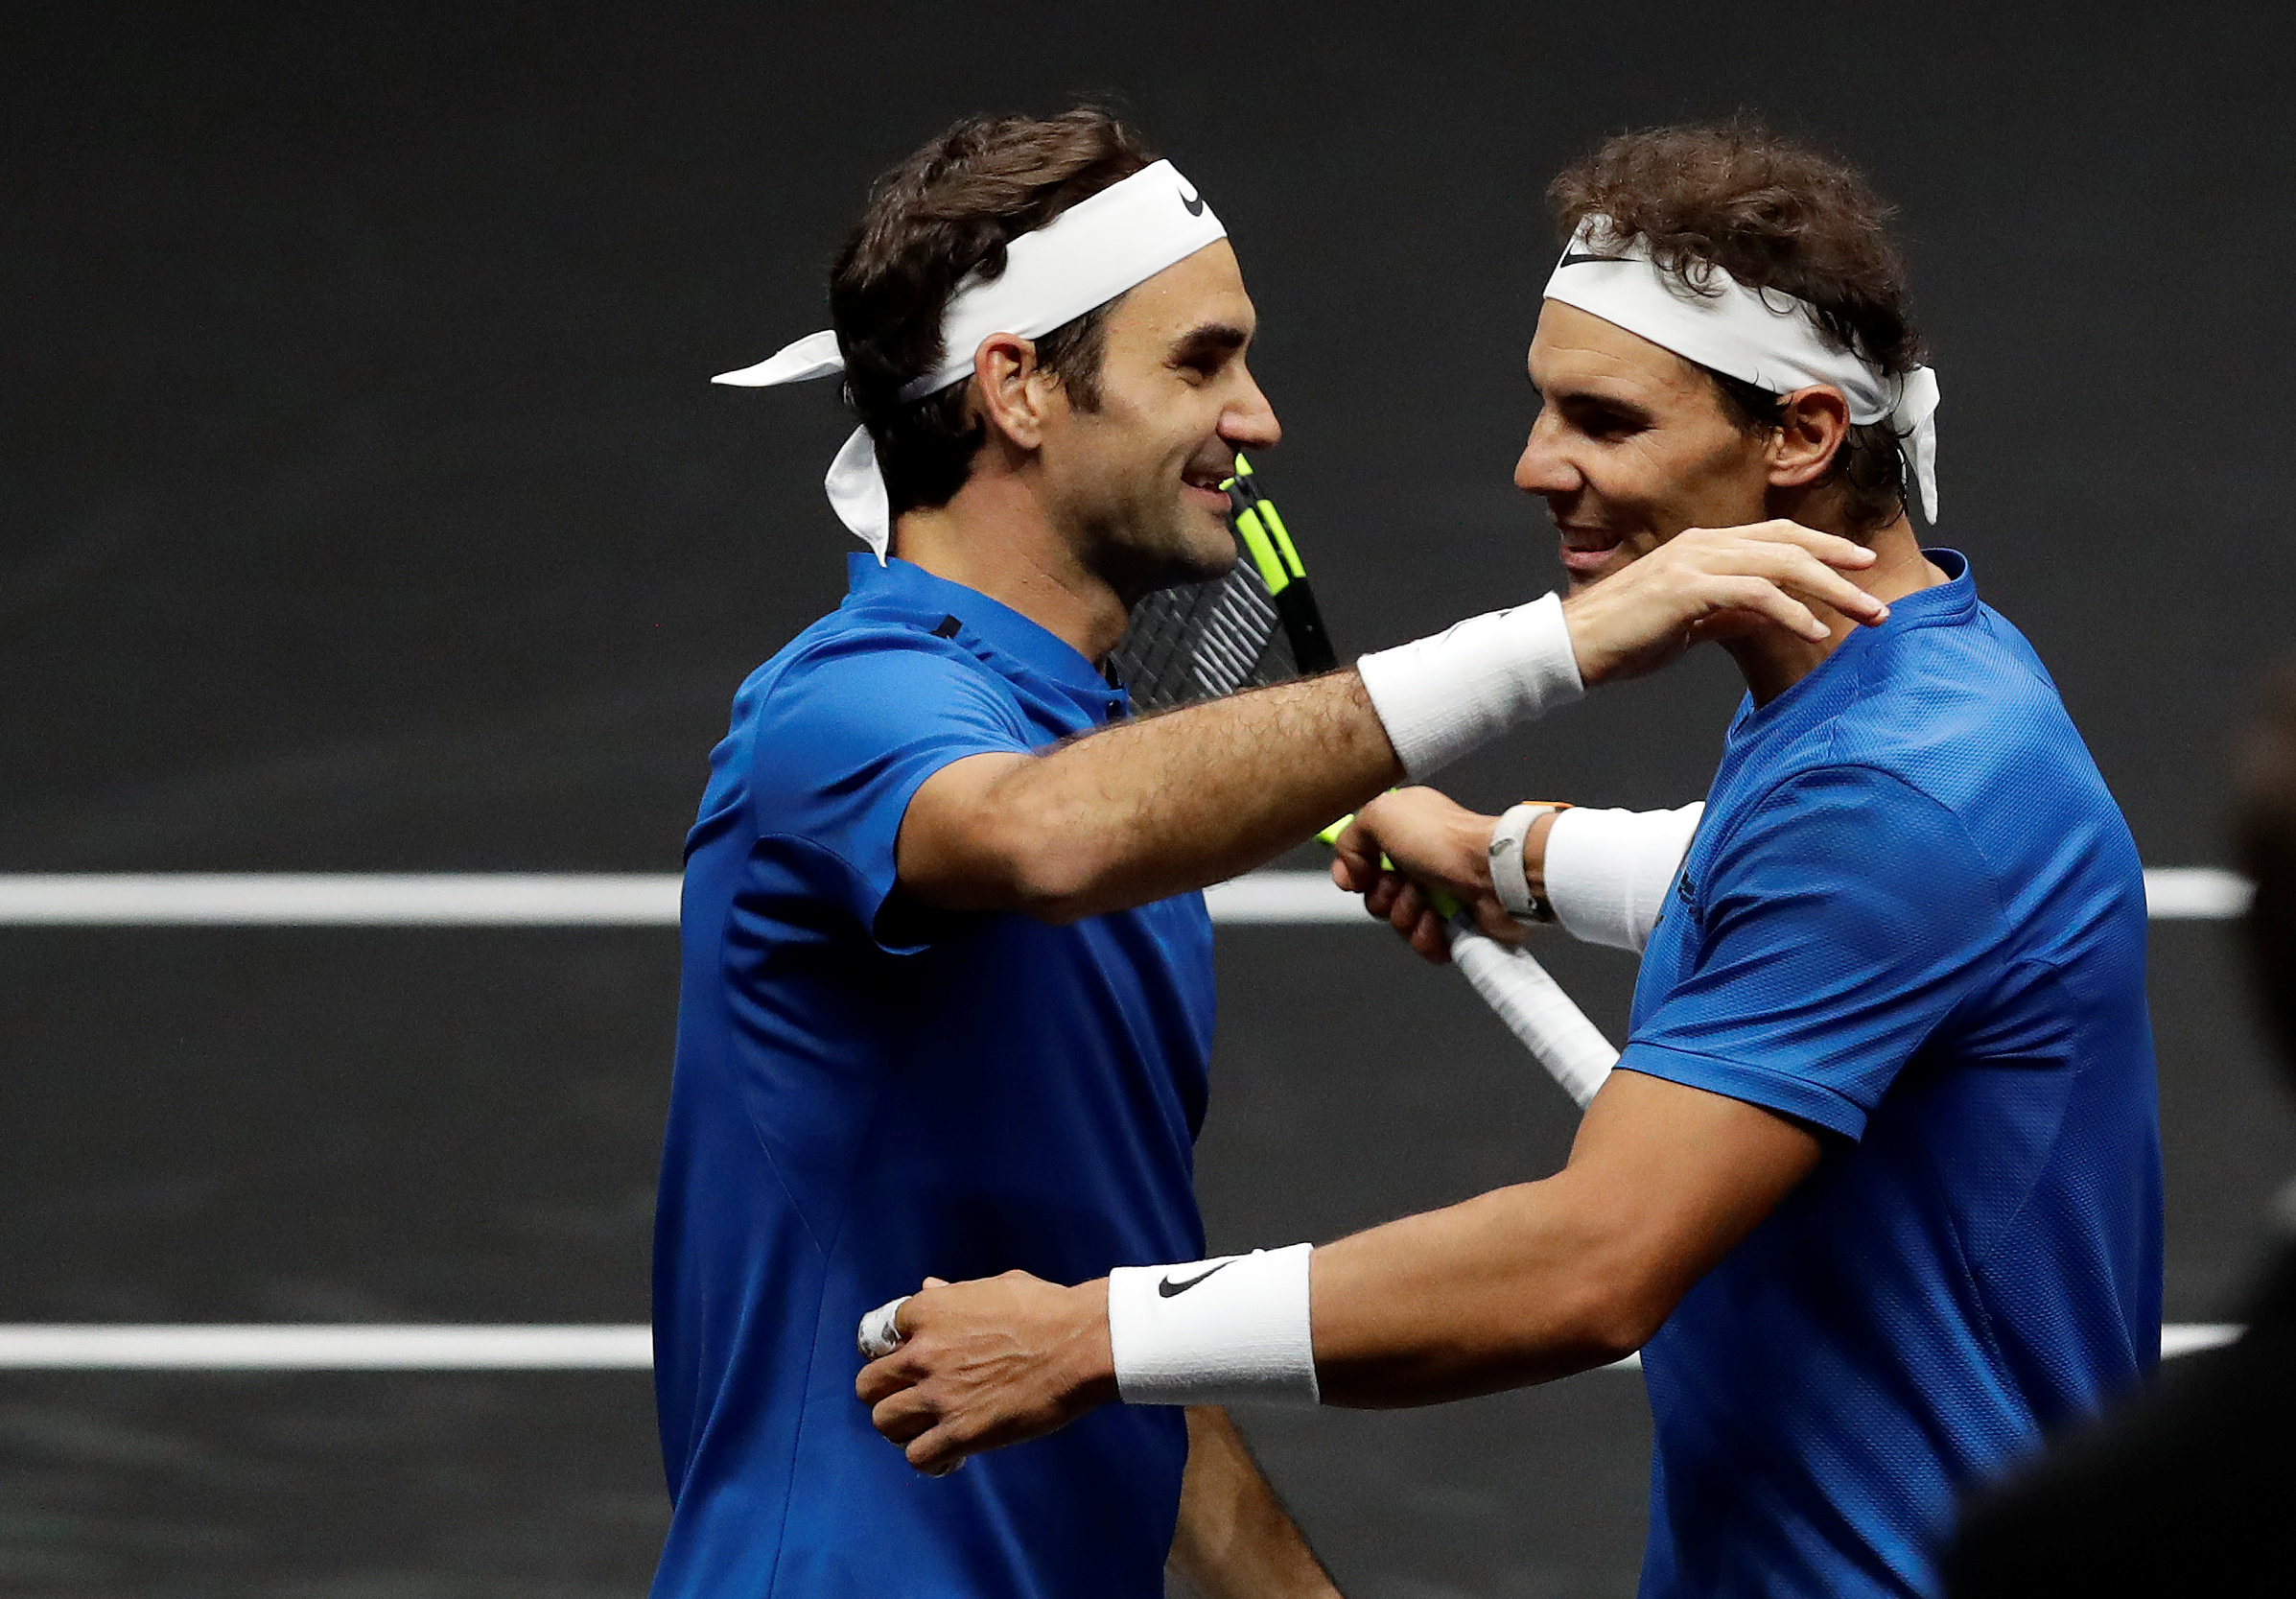 Tennis - Laver Cup - 2nd Day - Prague, Czech Republic - September 23, 2017 - Rafael Nadal and Roger Federer of team Europe celebrate after winning the match. REUTERS/David W Cerny